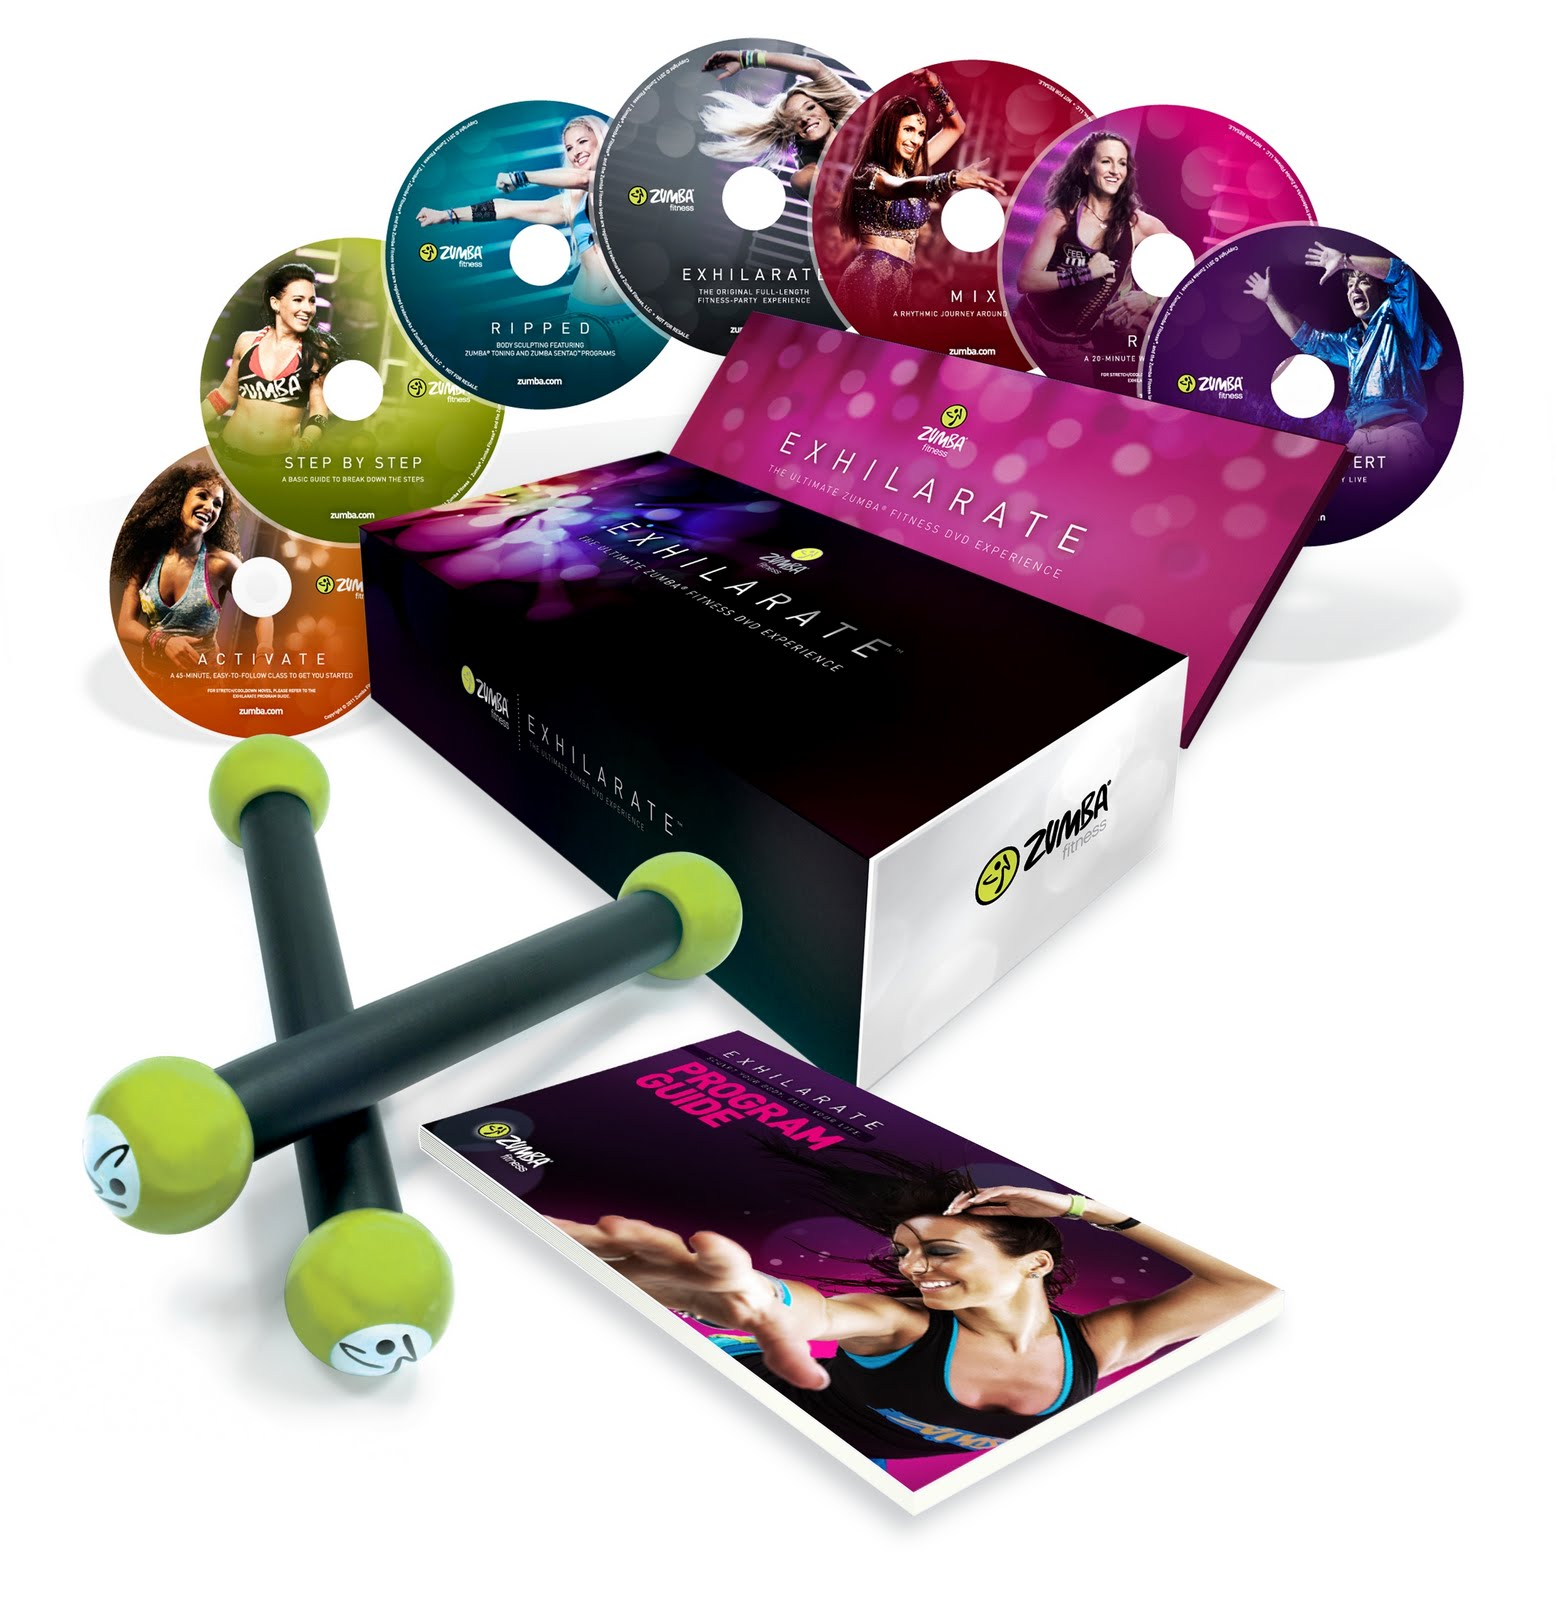 Chair Gym Dvd Set Land Of Nod Executive Cover Sammi 39s Blog Life Zumba Fitness Review